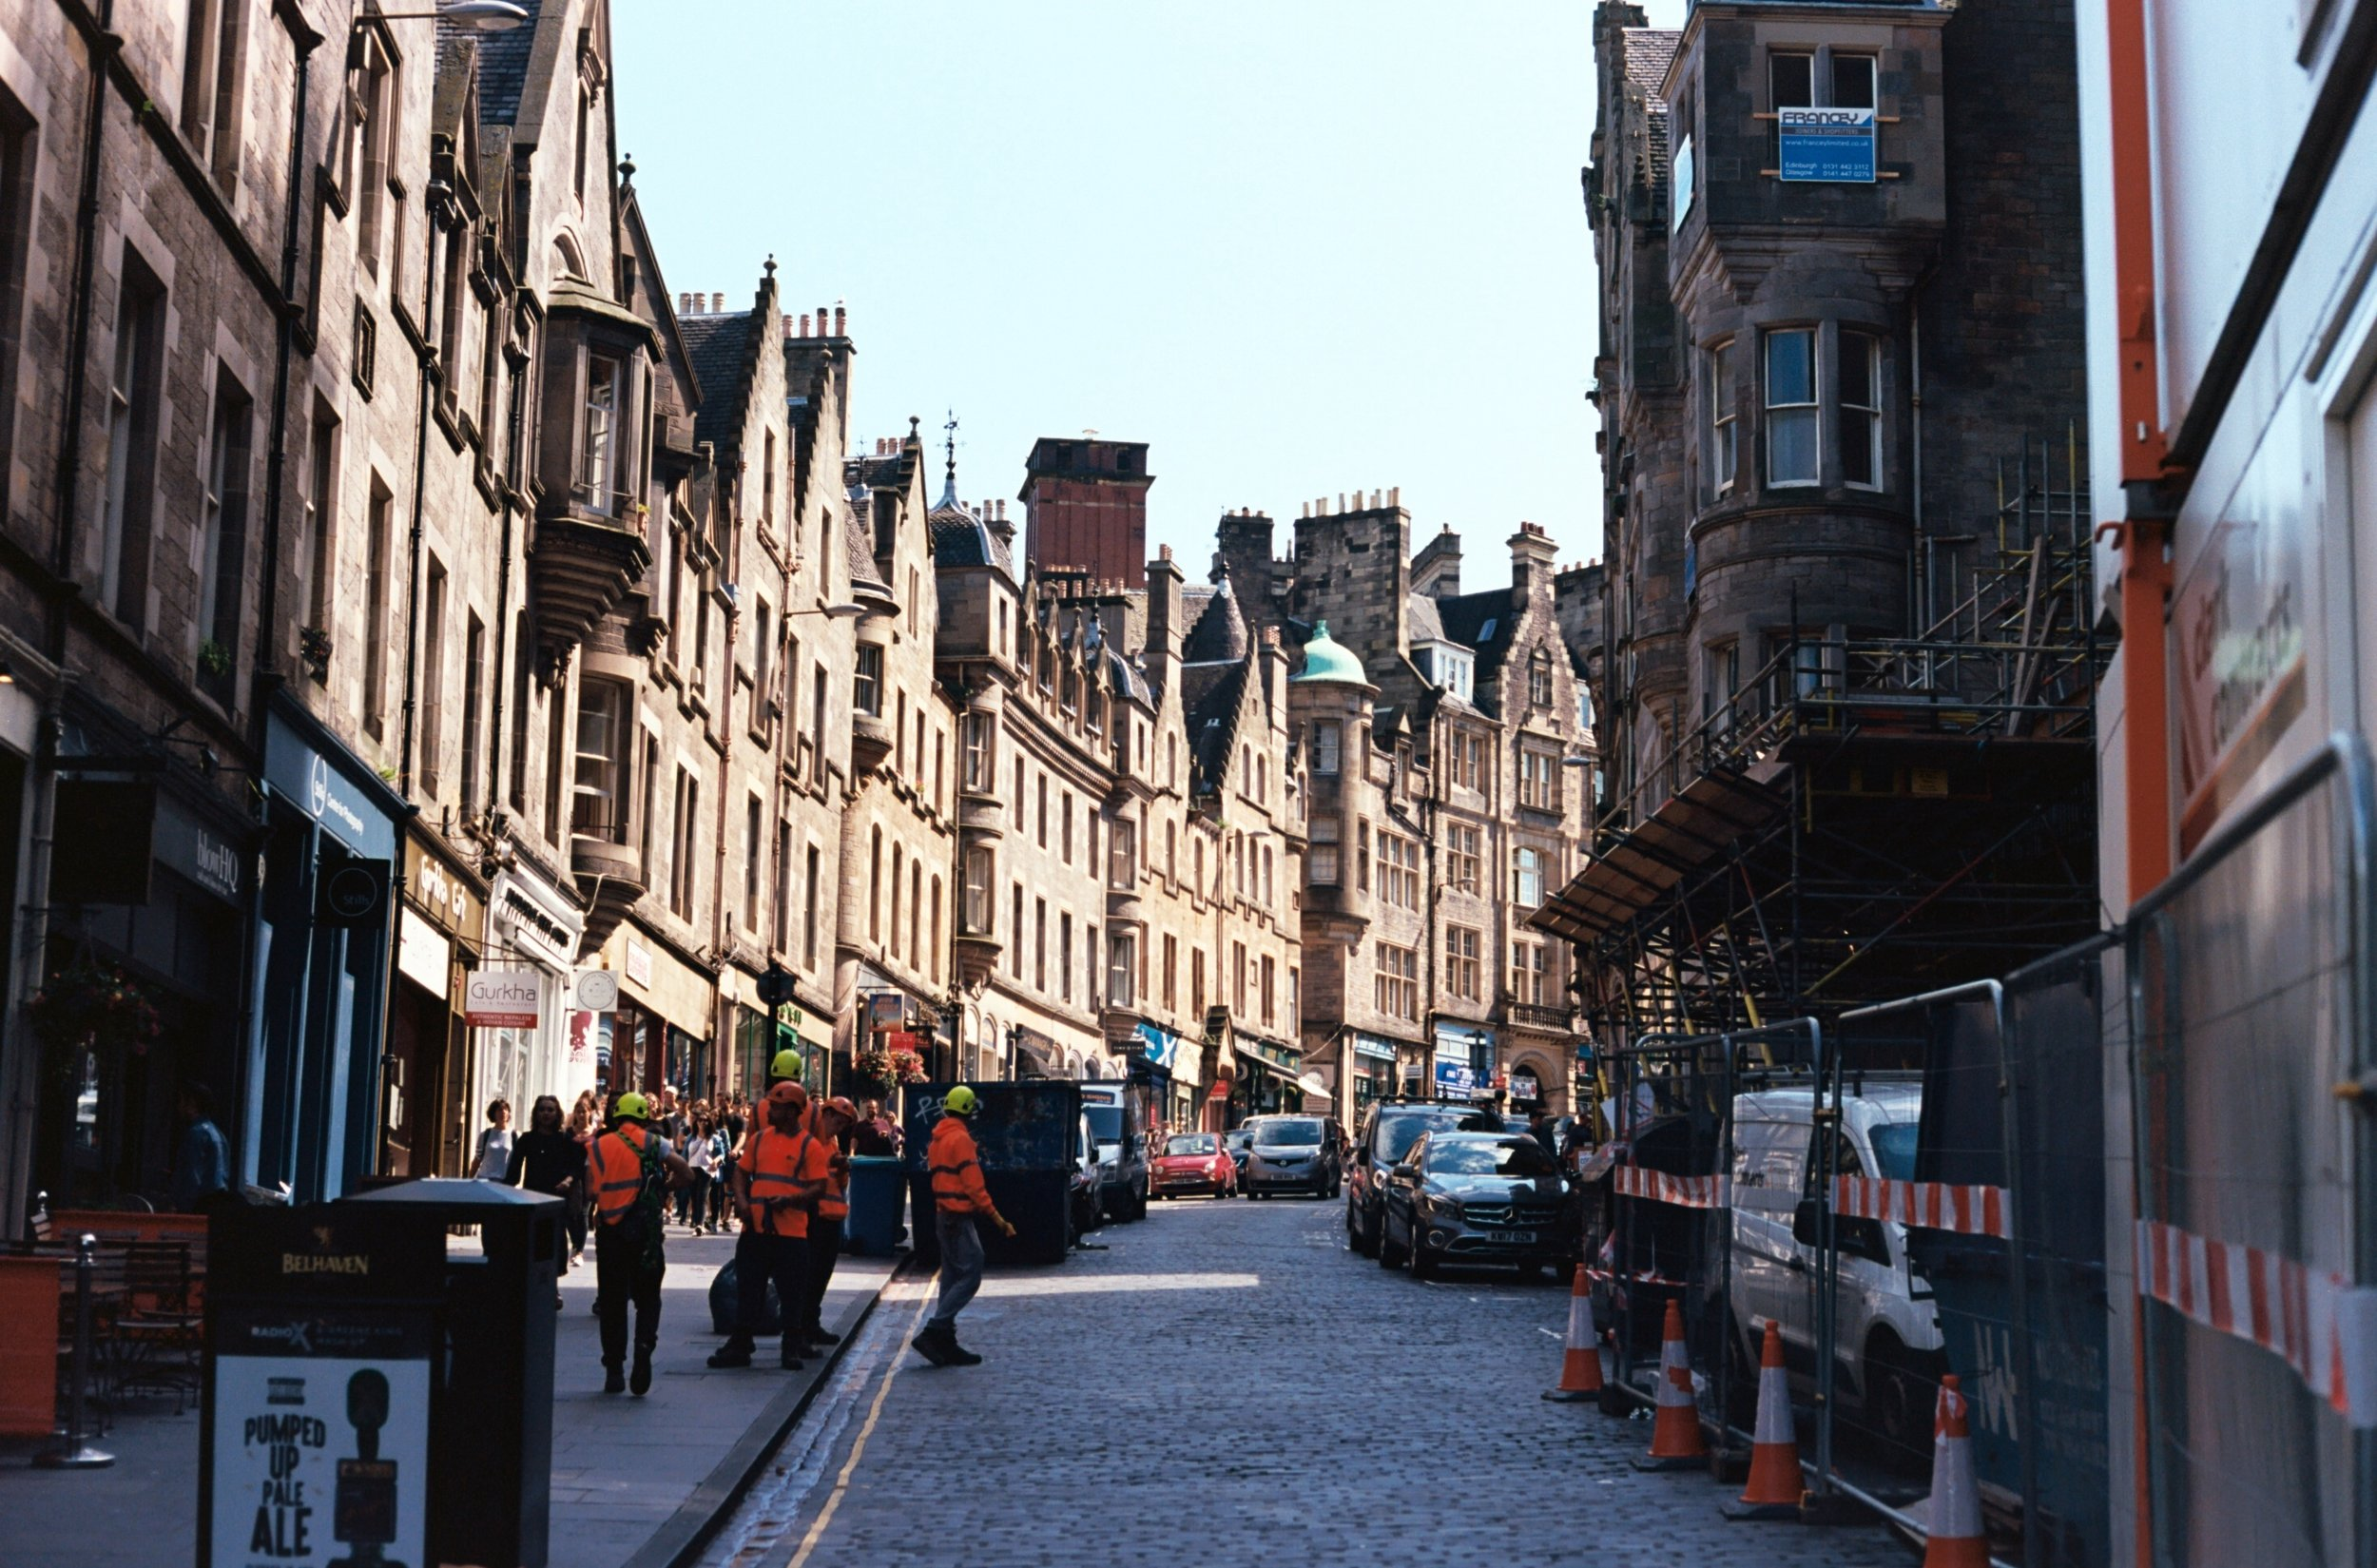 Edinburgh Cockburn Street - 35mm Canon AE-1 - Kodak Ektar 100